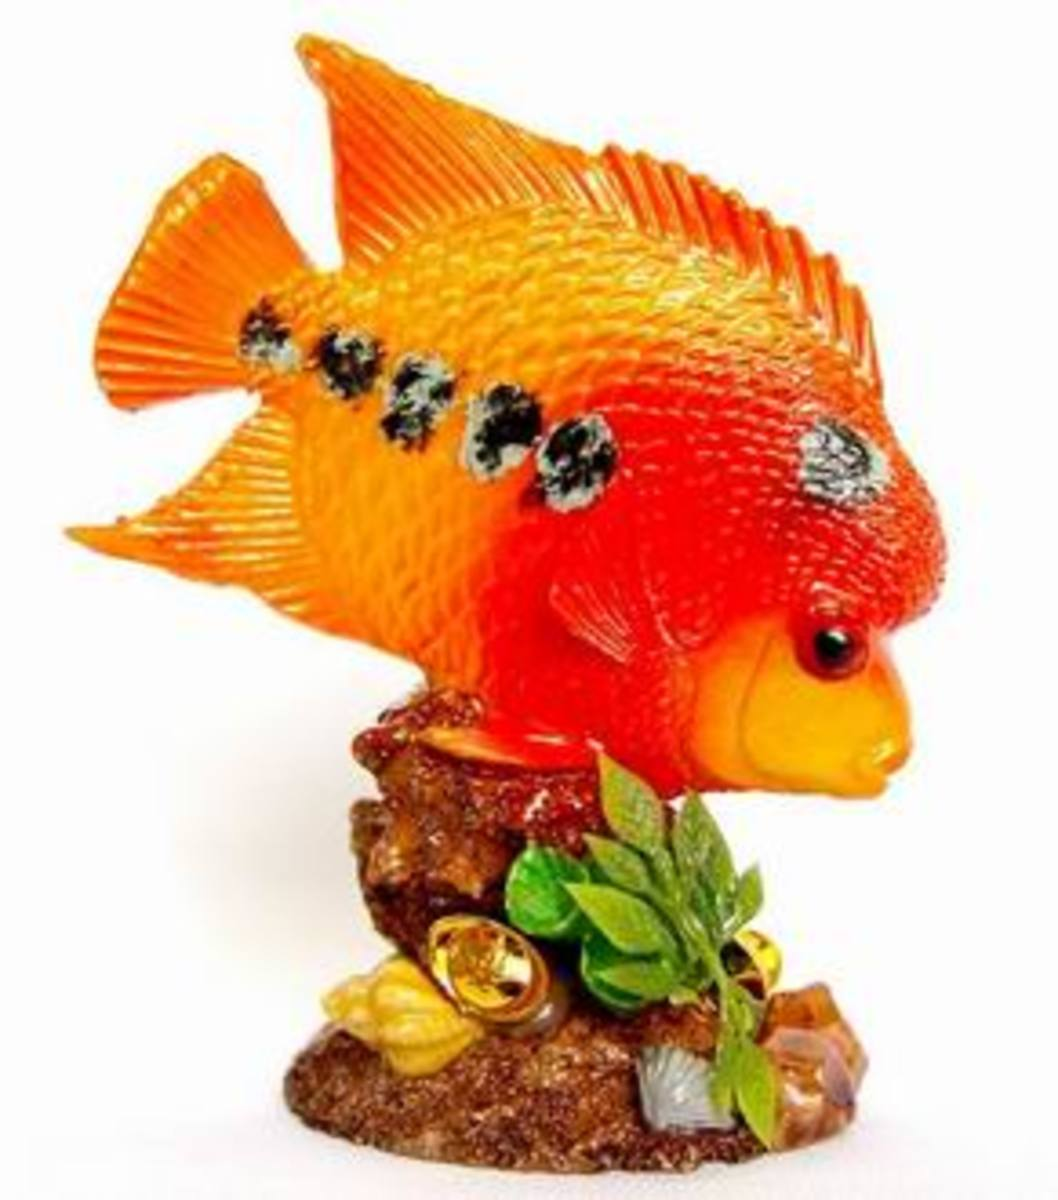 Flower horn Fish Feng Shui symbol for Wealth and Career Luck